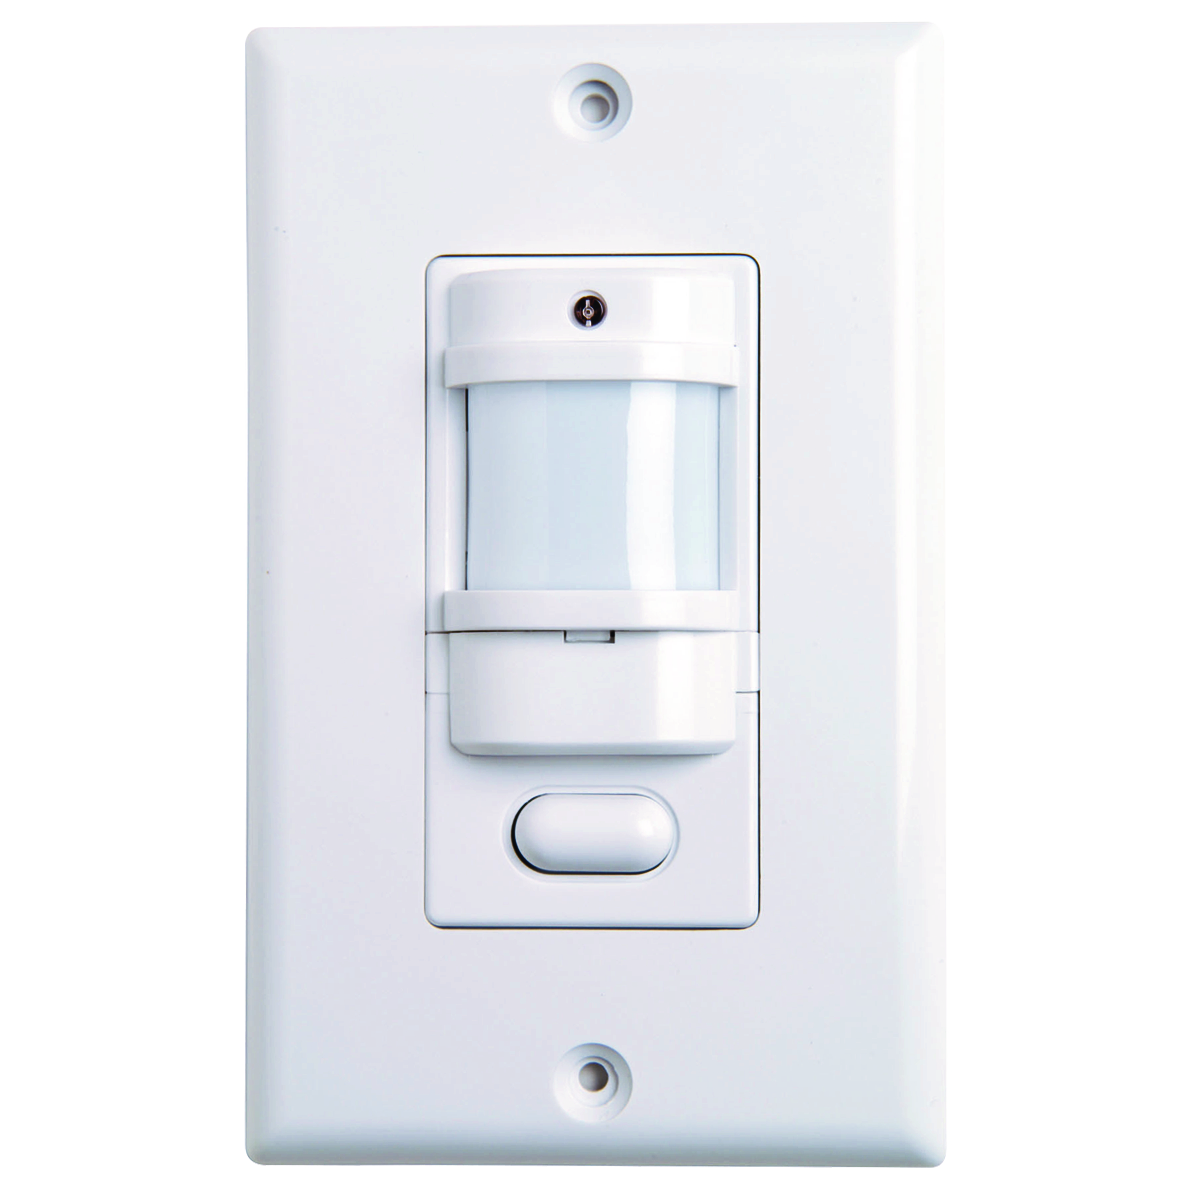 Iwszpm | occupancy / vacancy sensors | lighting controls & sensors.